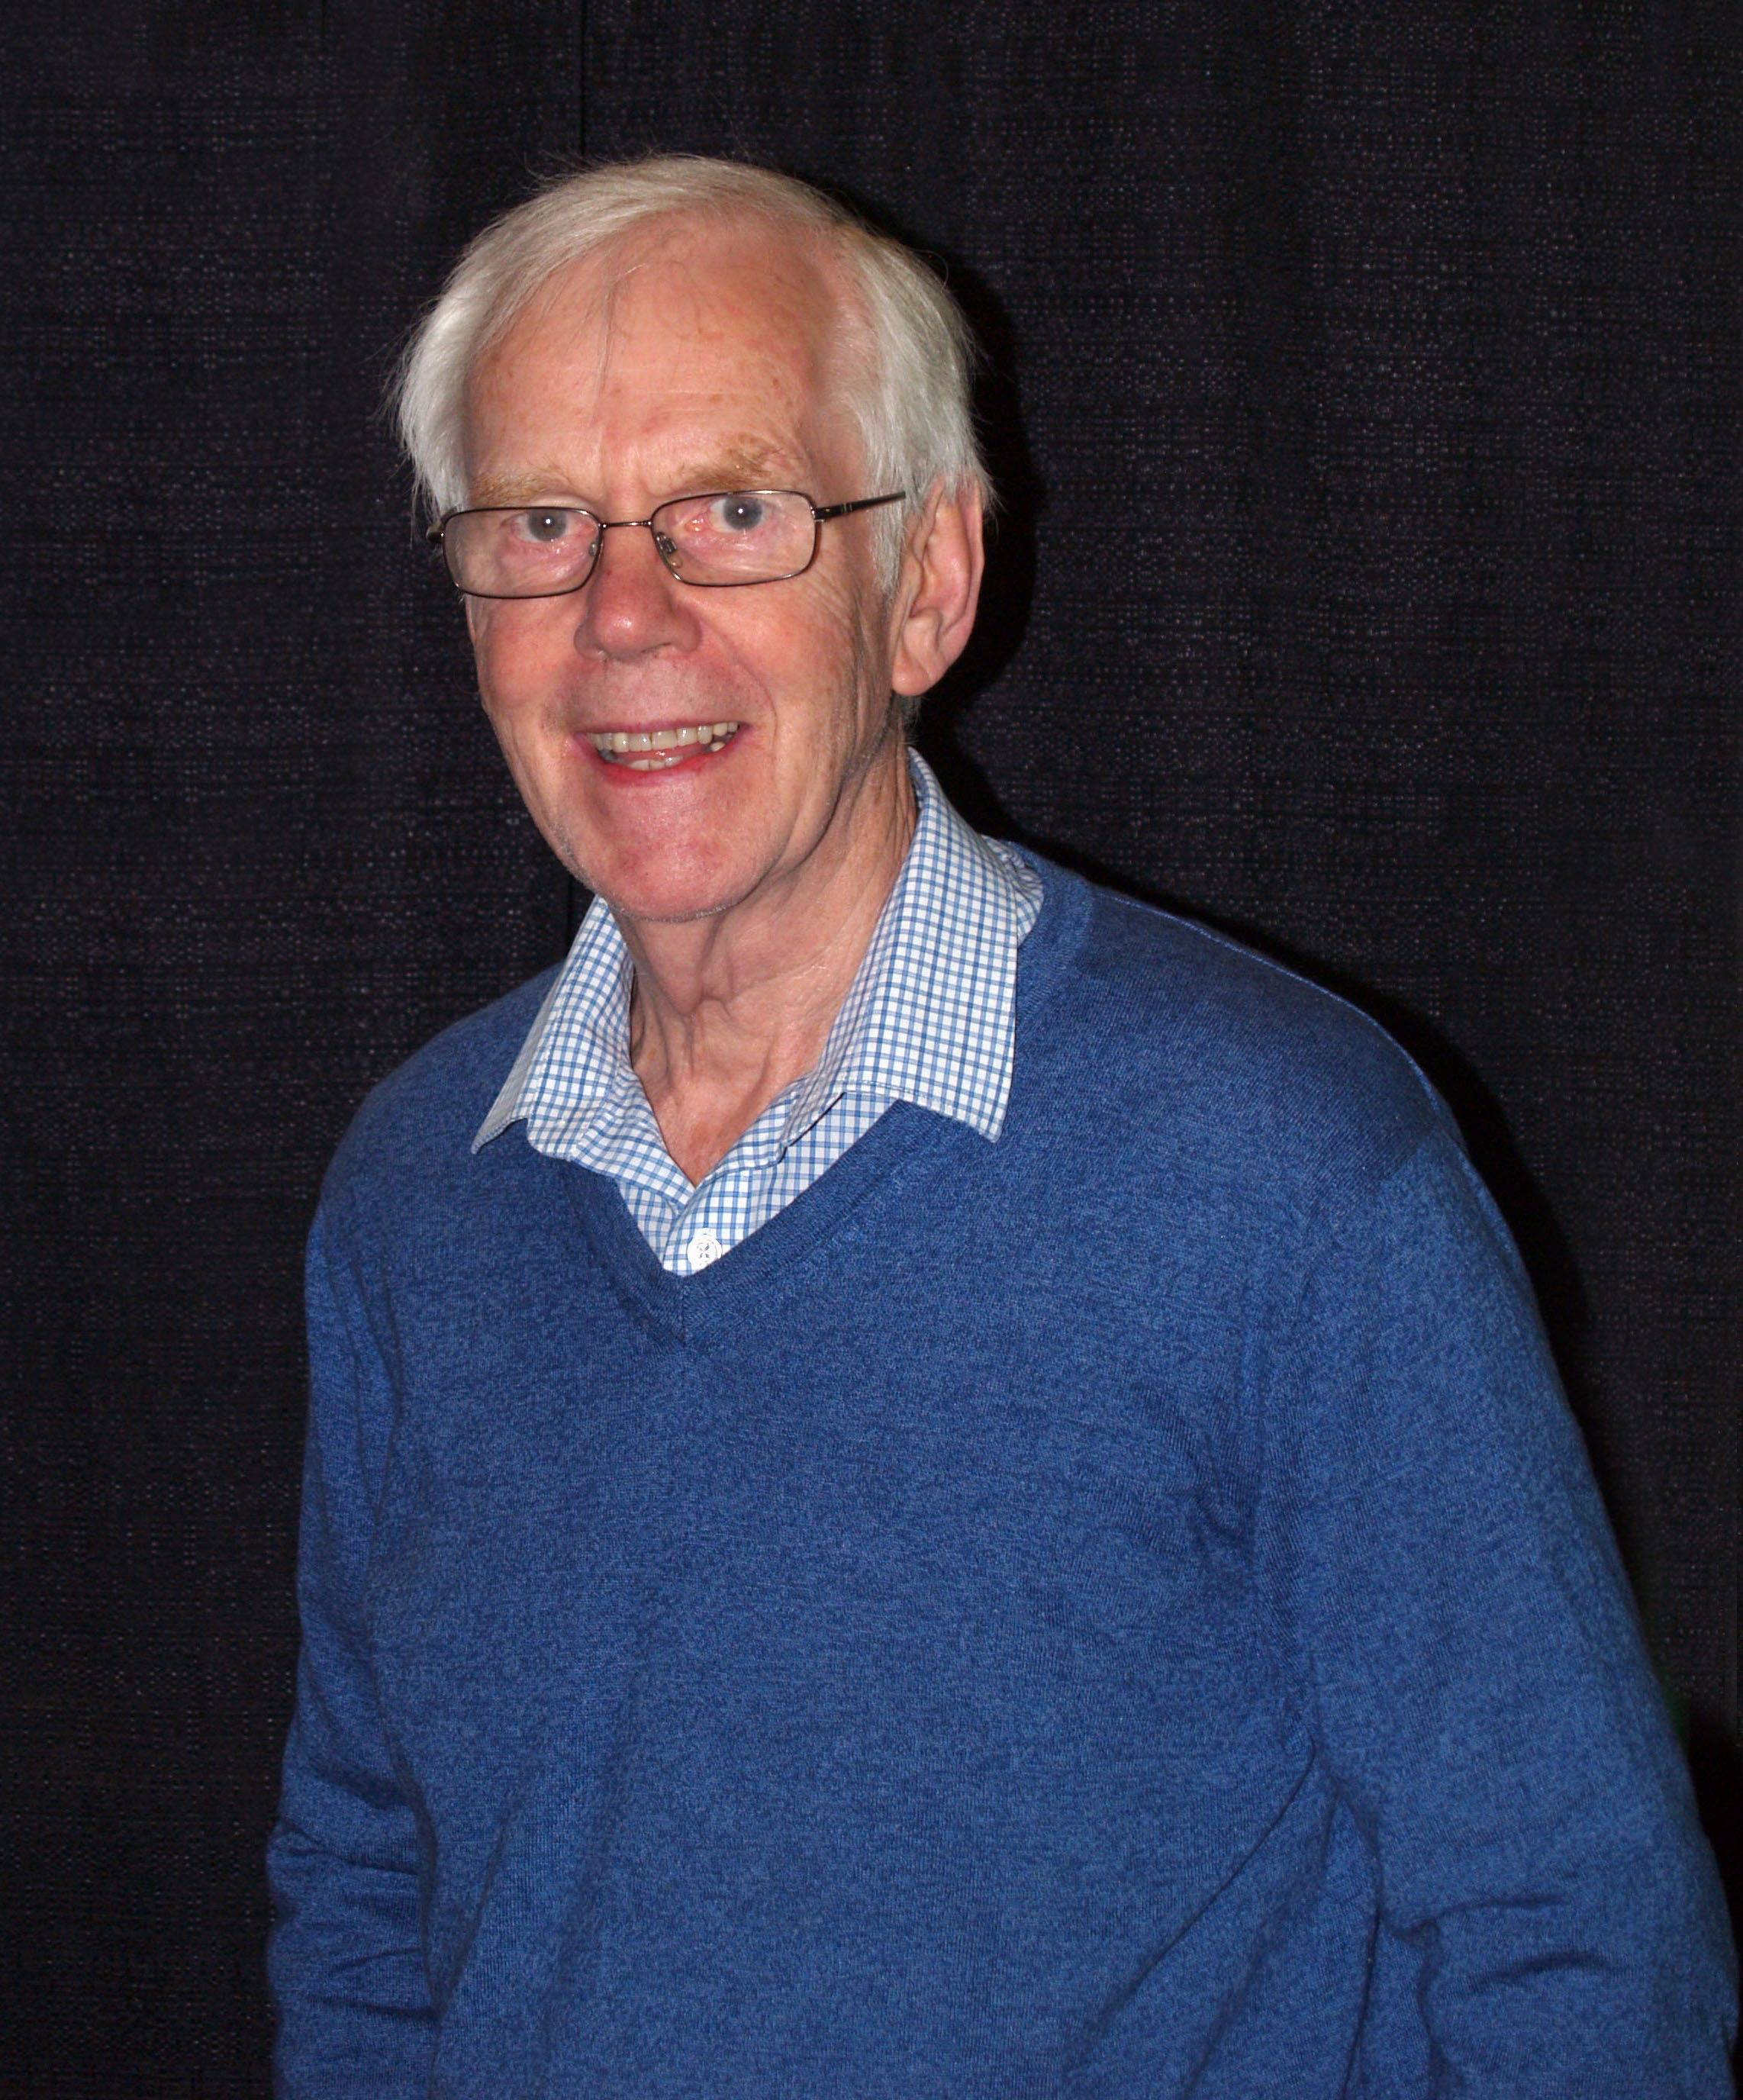 Jeremy Bulloch (born 1945) nude photos 2019